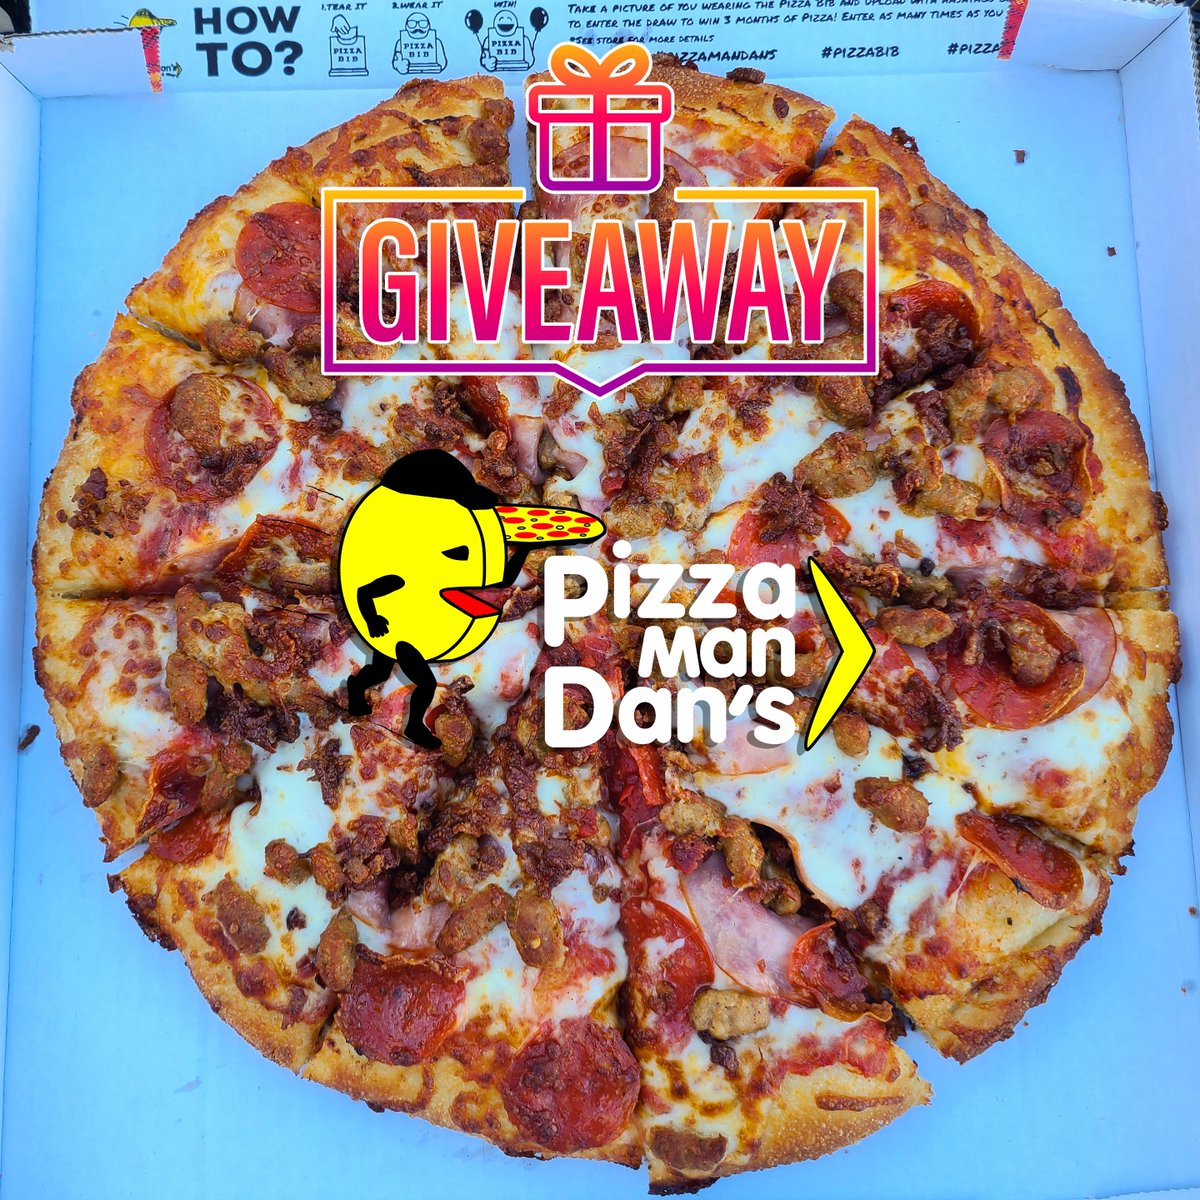 🔥 GIVEAWAY 🔥  🍕 📢 We're giving away THREE #PizzaManDans Gift Certificate Packages split among three lucky winners! Each Gift Certificate is good for a Lg 2-Item Pizza + 12 Wings + 1 Calzone + 1 Sub + 2 PizzaMan Dan's Stickers!💓  Follow @PizzaManDans on Instagram for details!